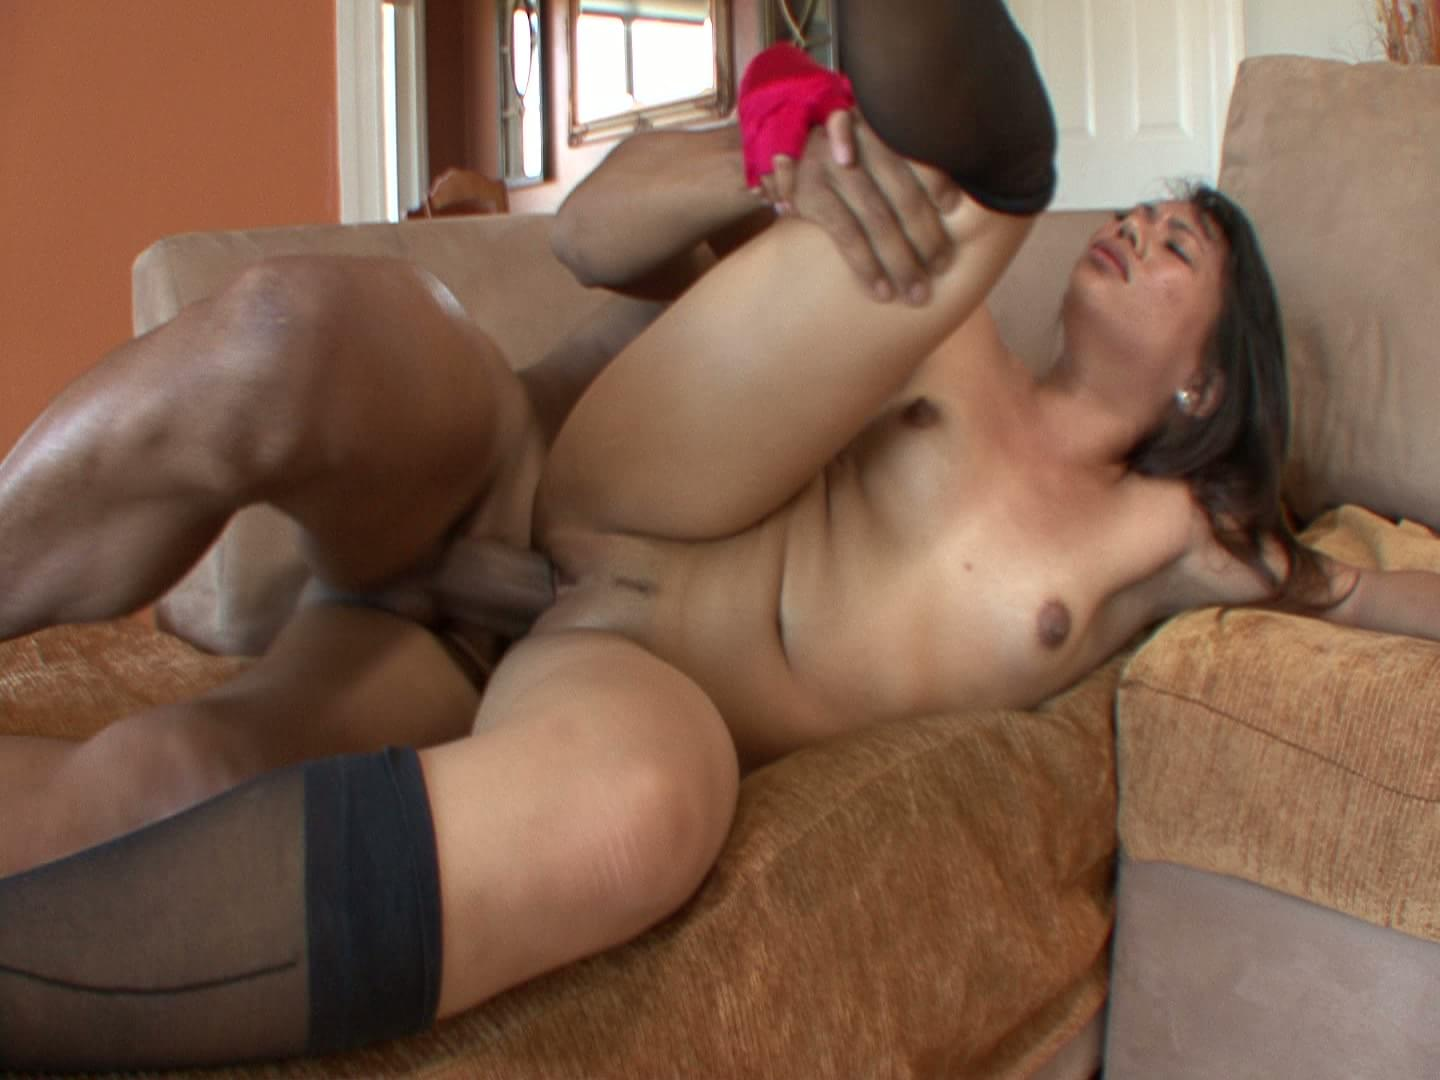 This horny Asian girl sucks on his big black rod and then gets it jammed in her pussy in this free tube video.